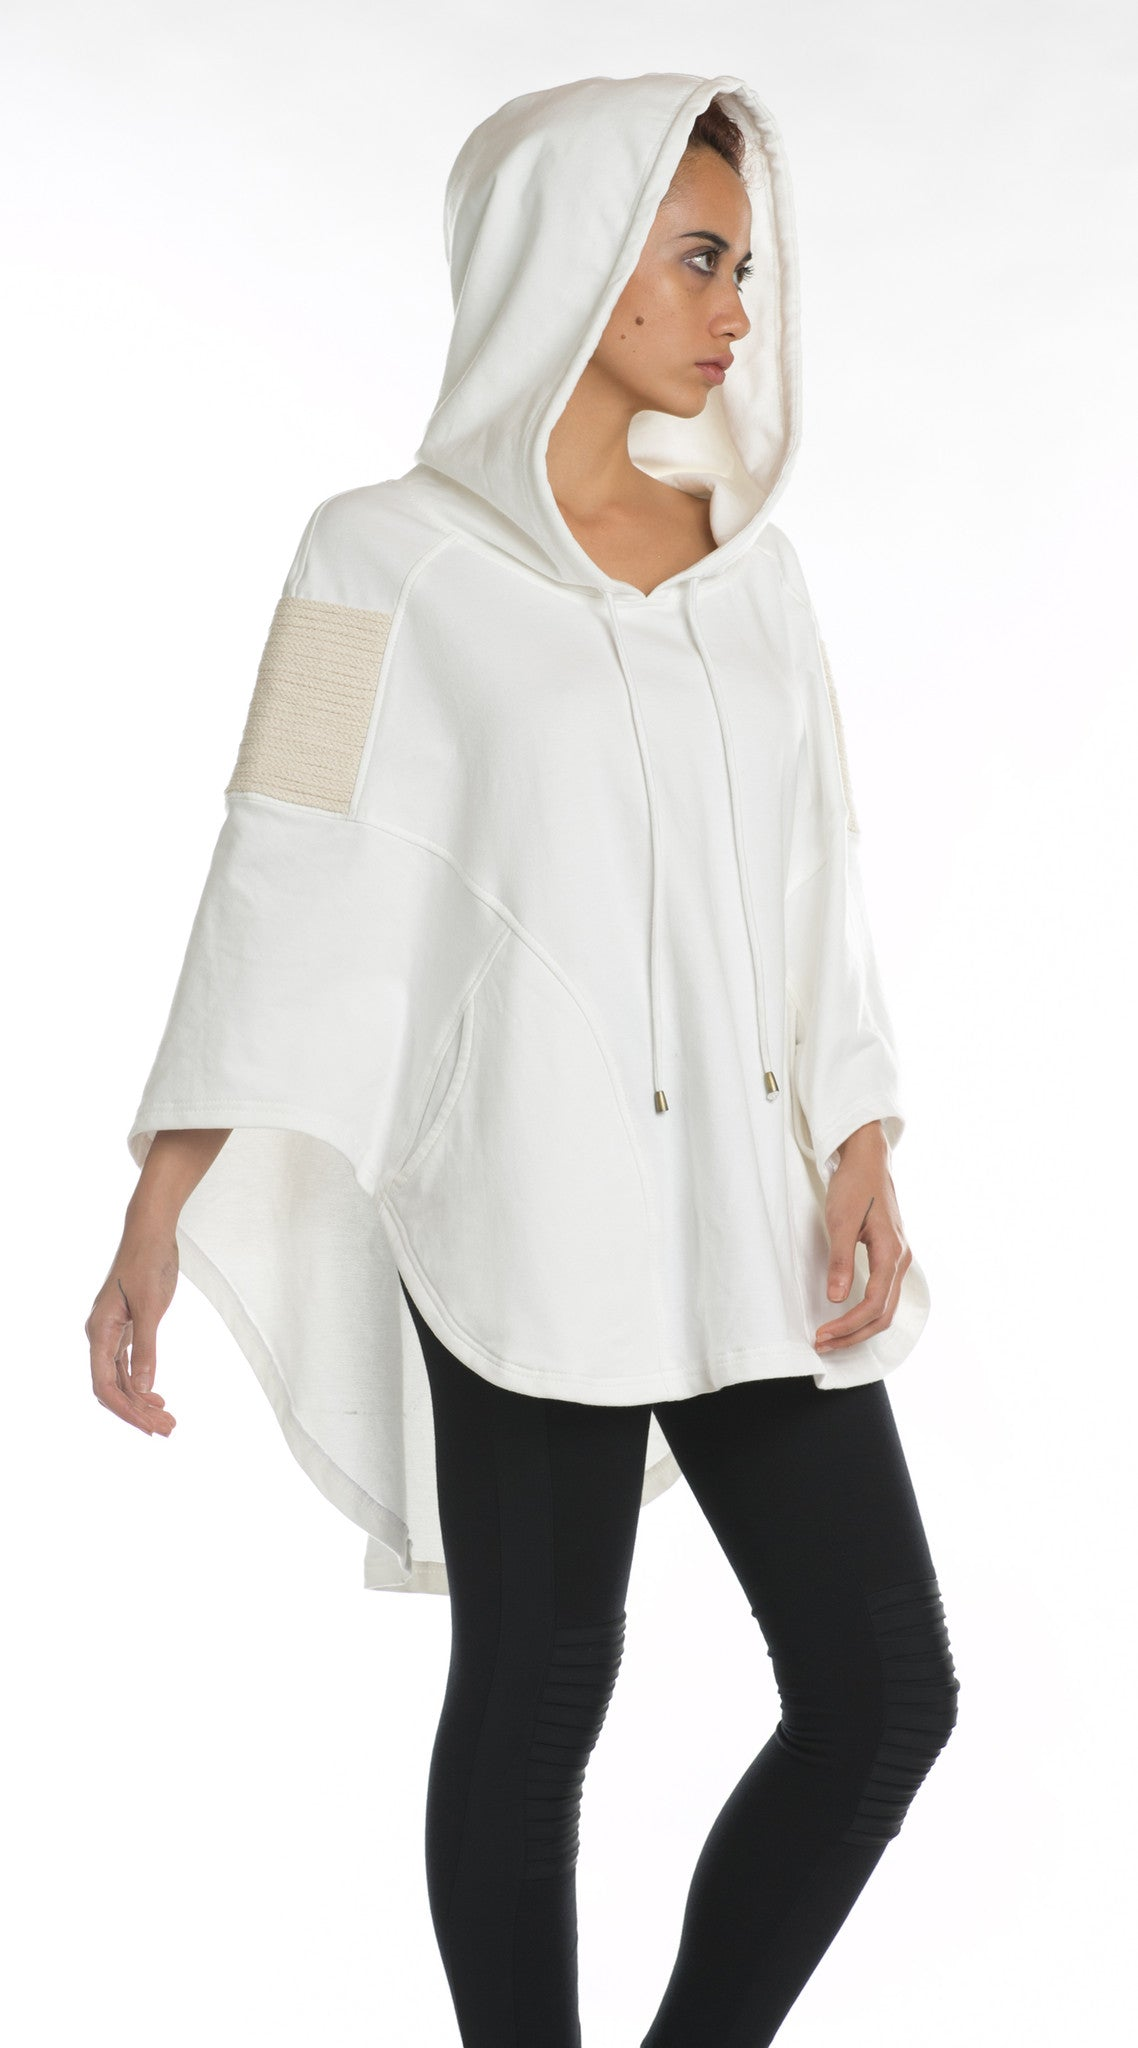 Boa Hooded Poncho White